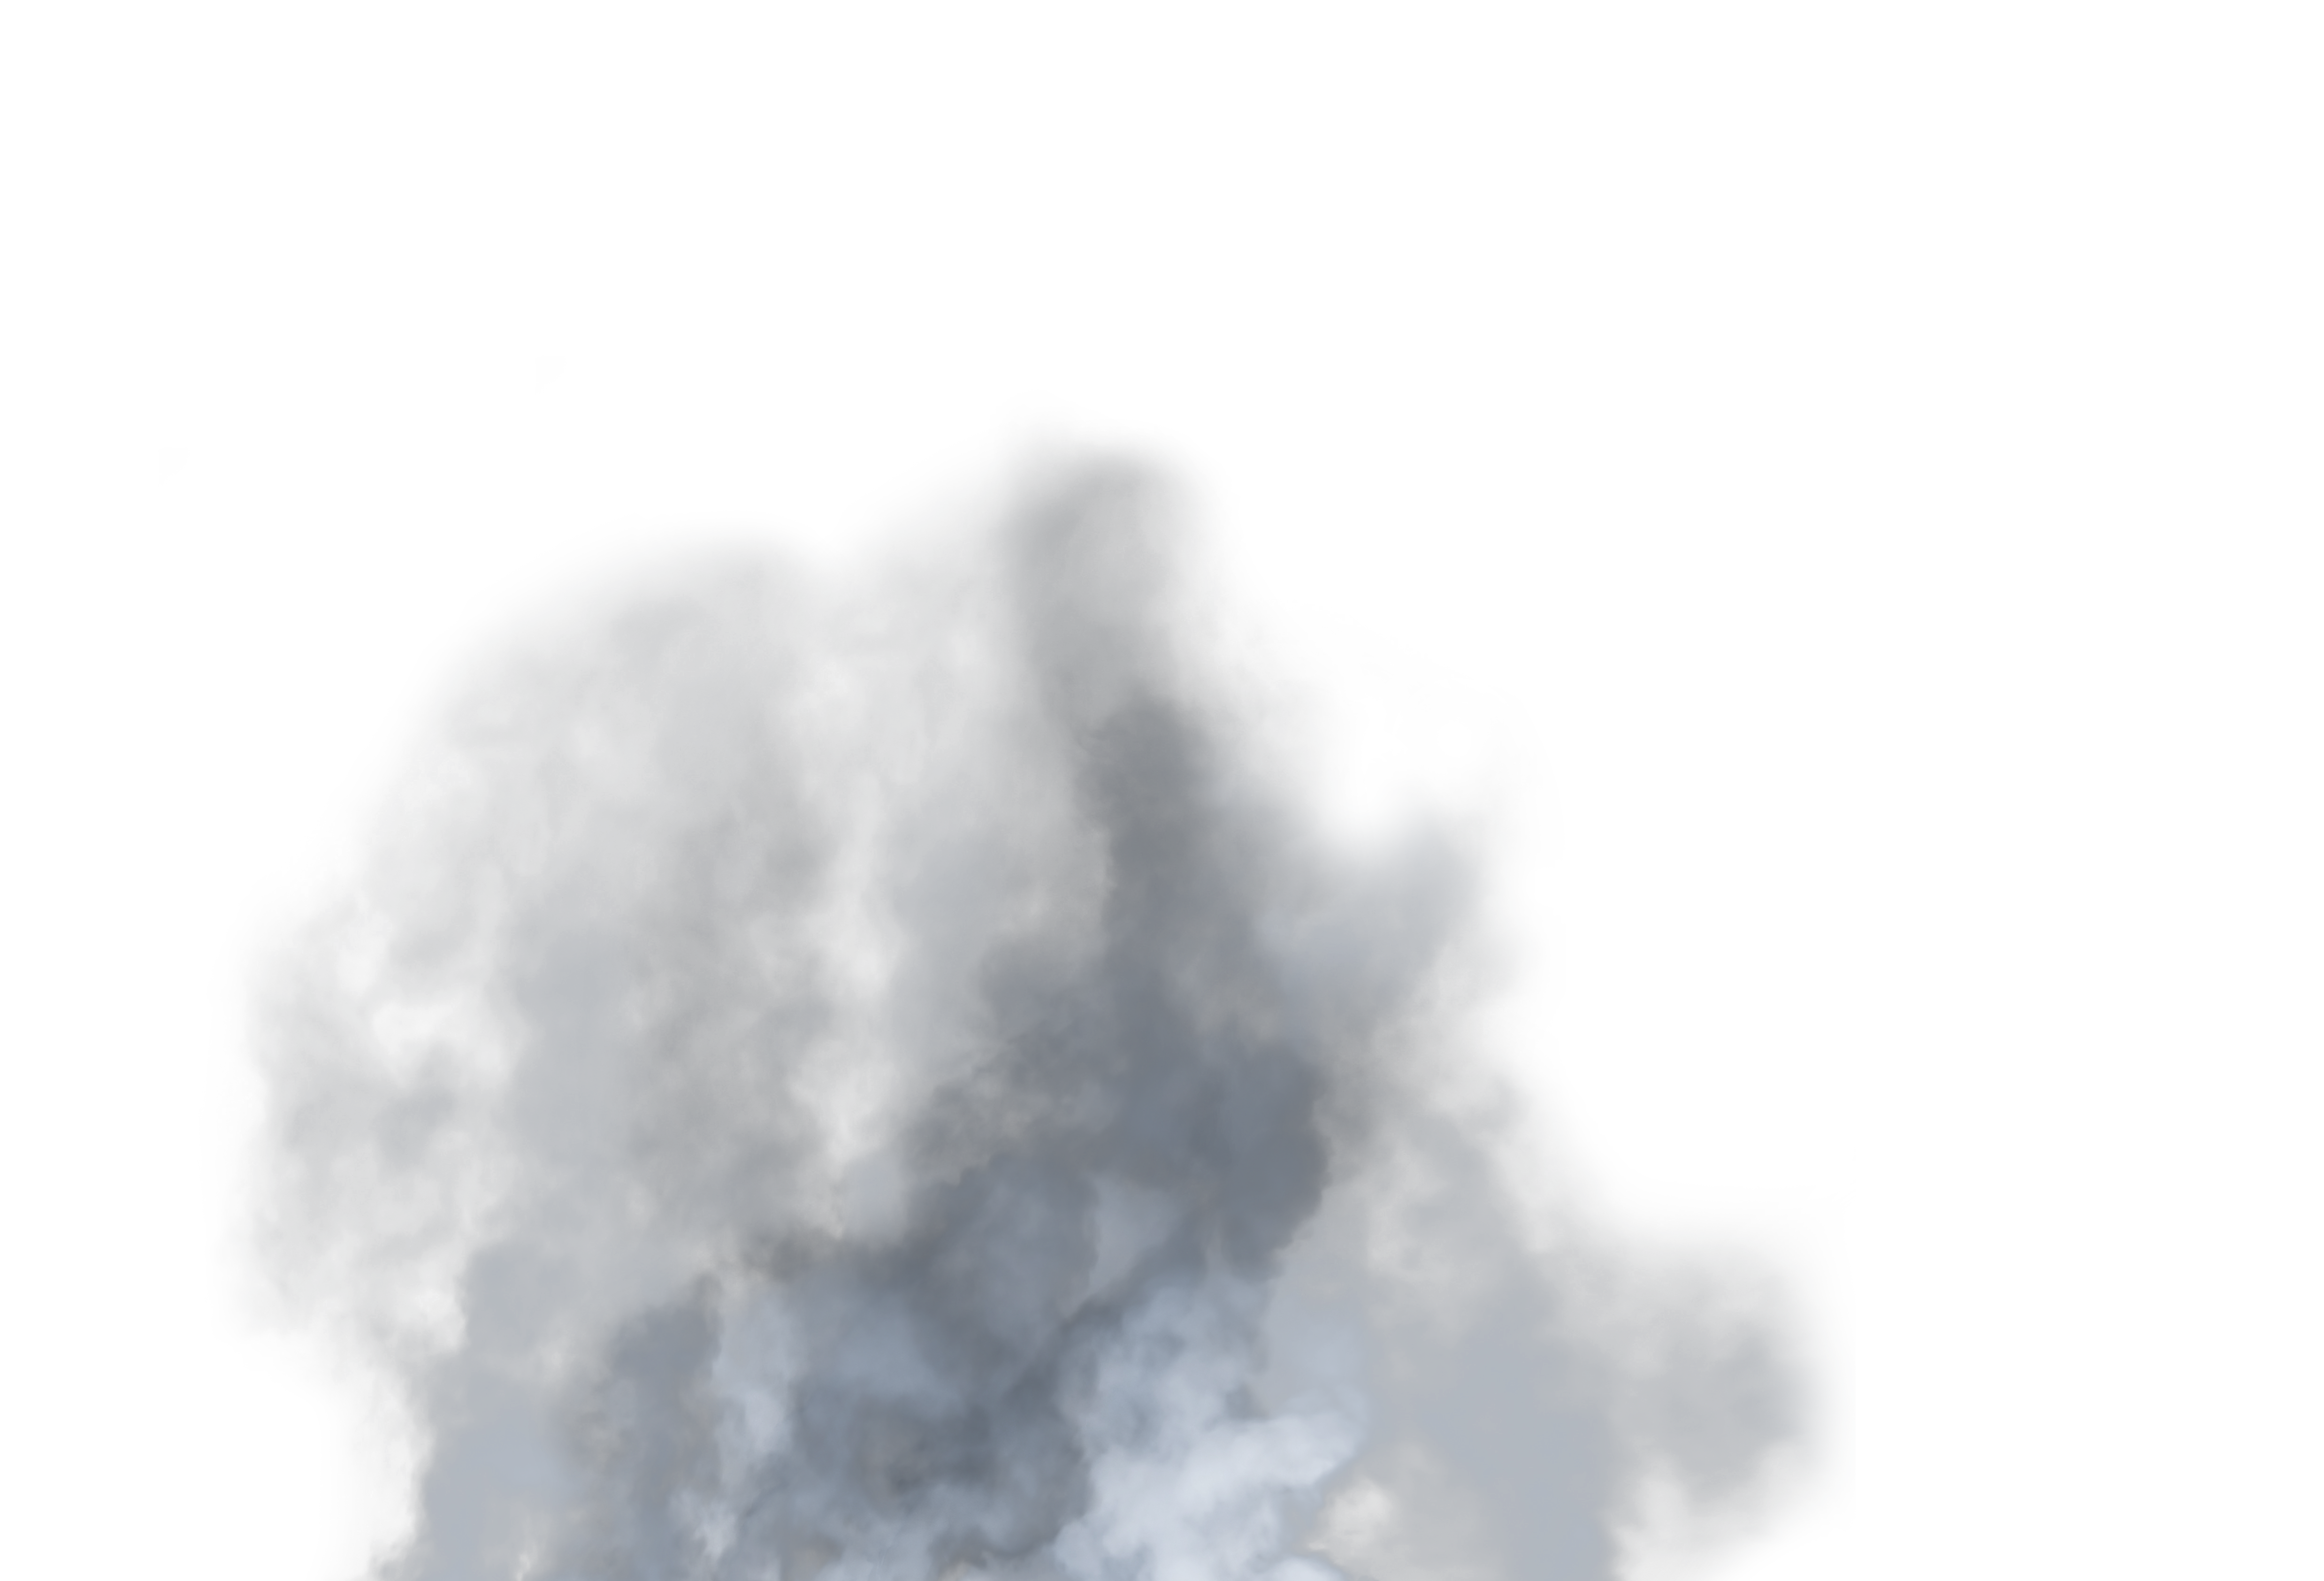 Smoke fog png. Haze pictures of mist